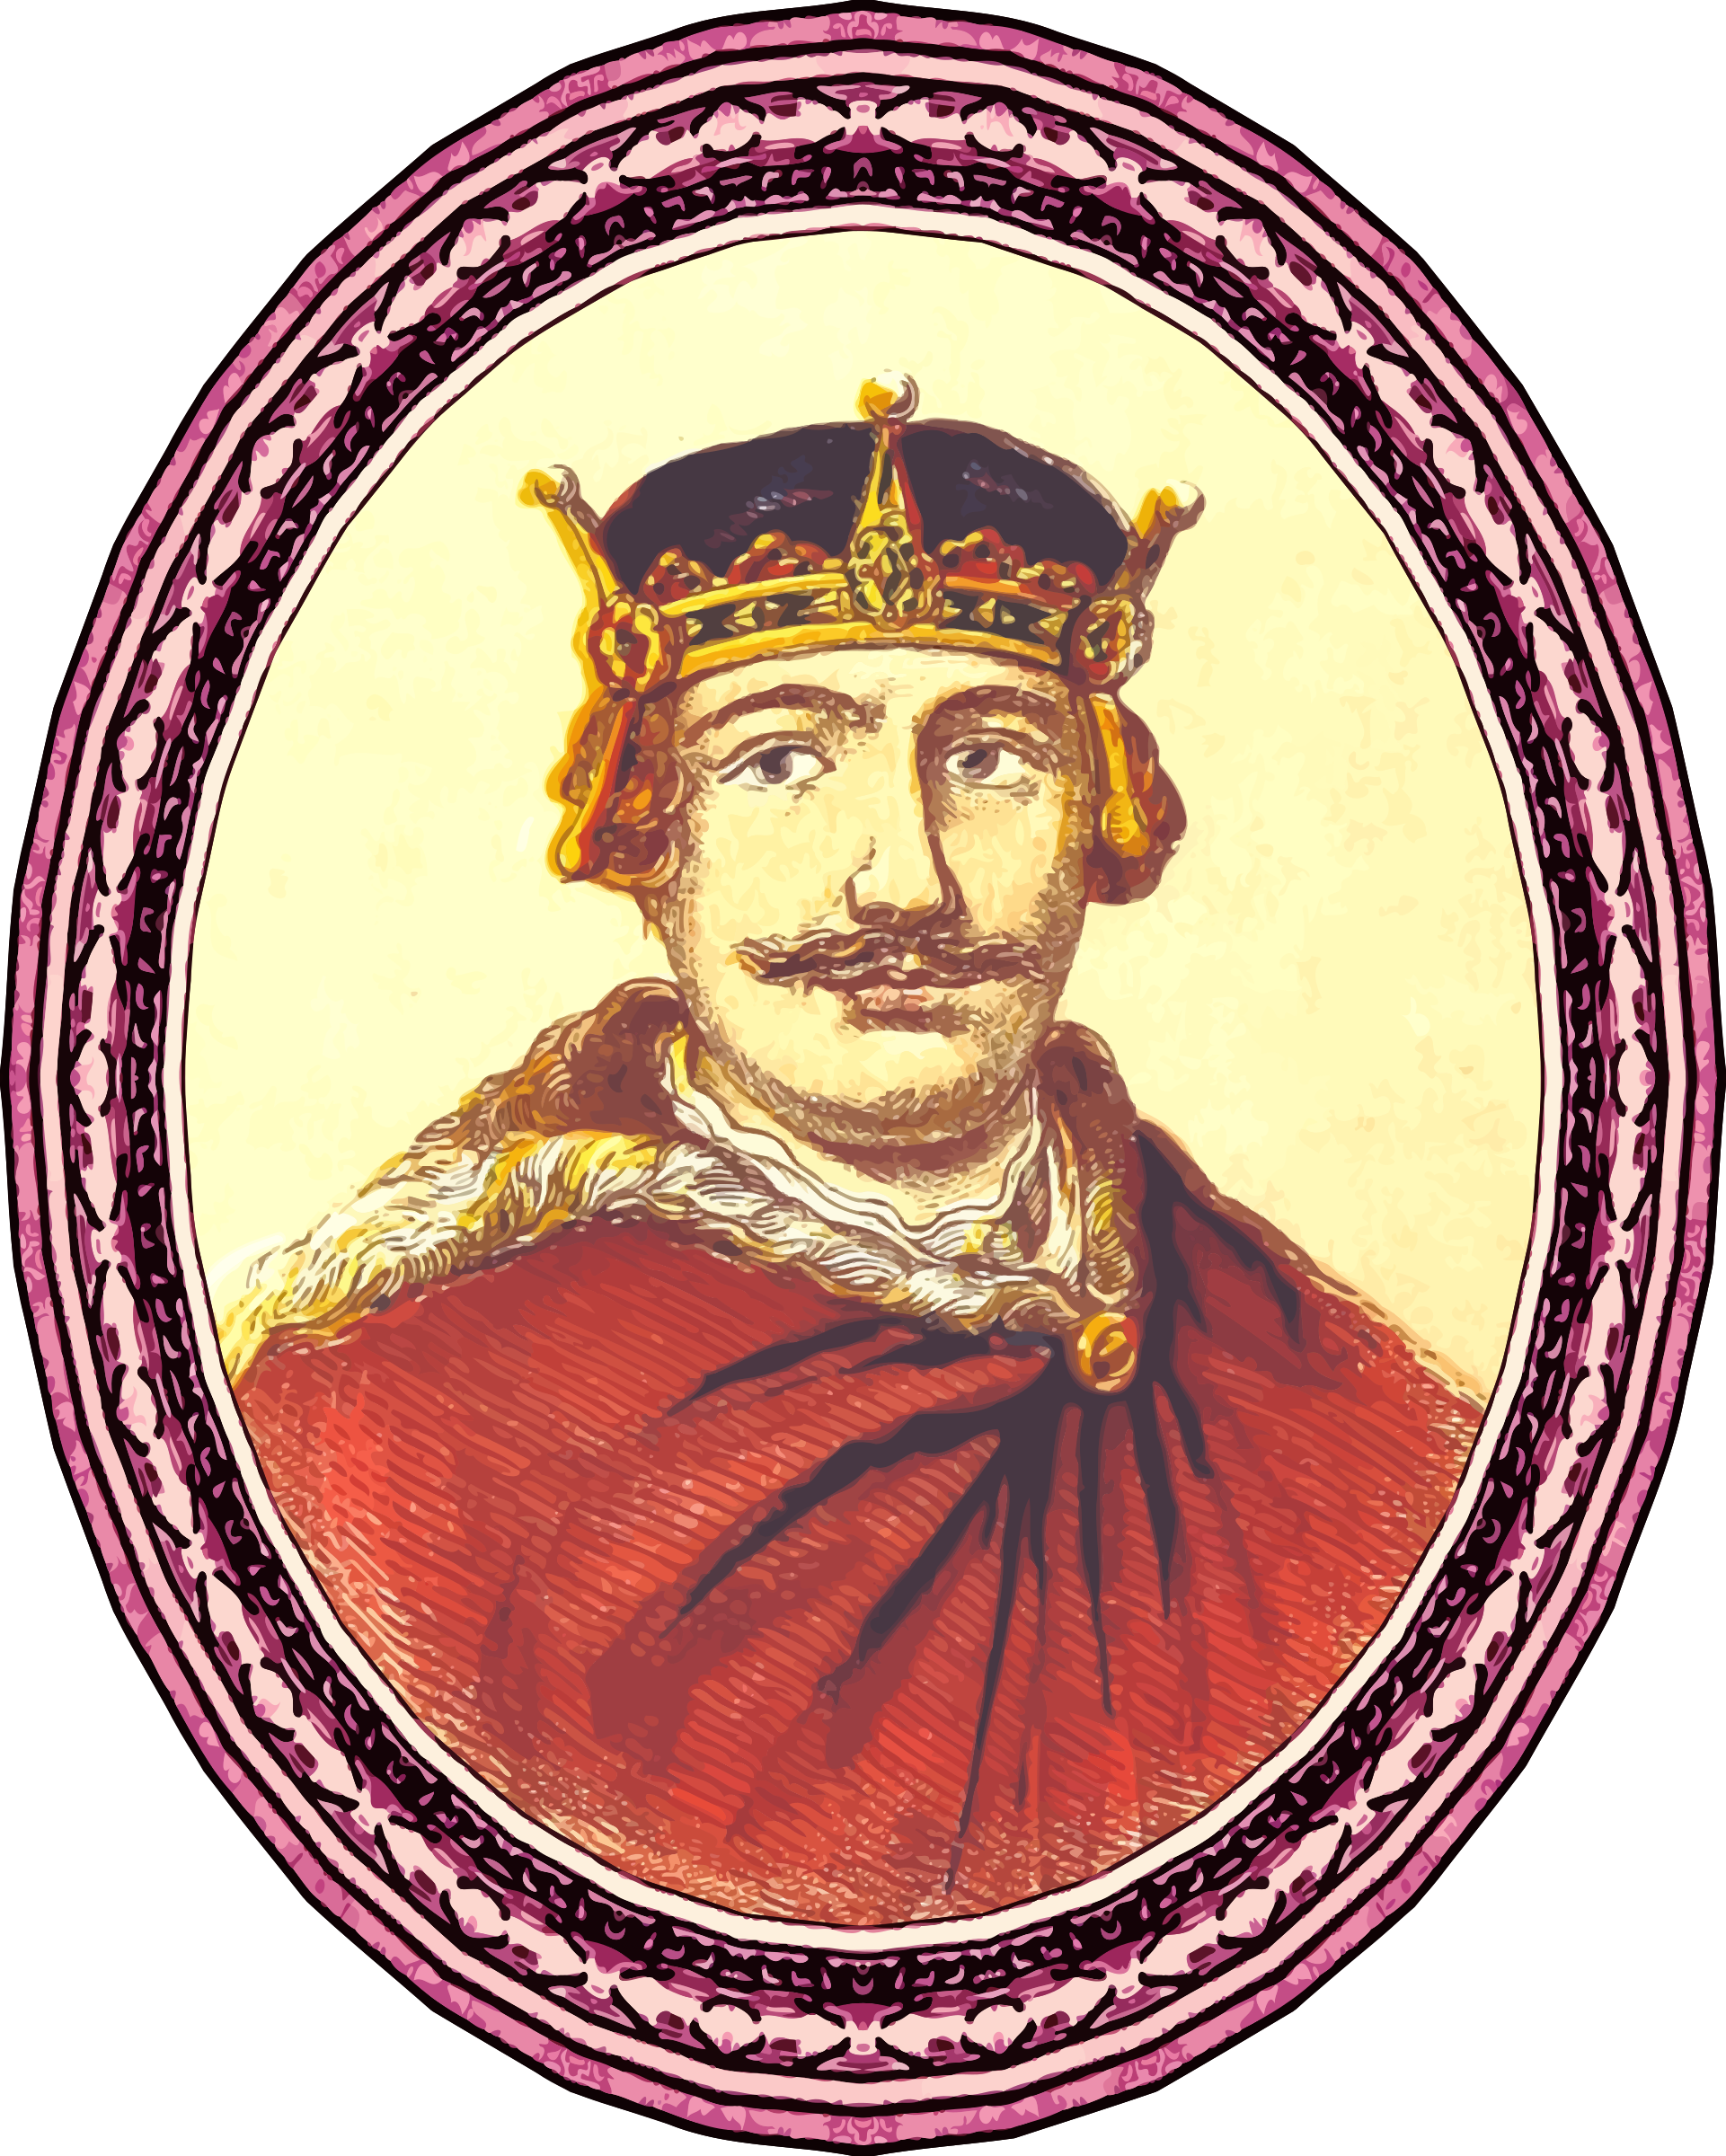 King William II (framed) by Firkin